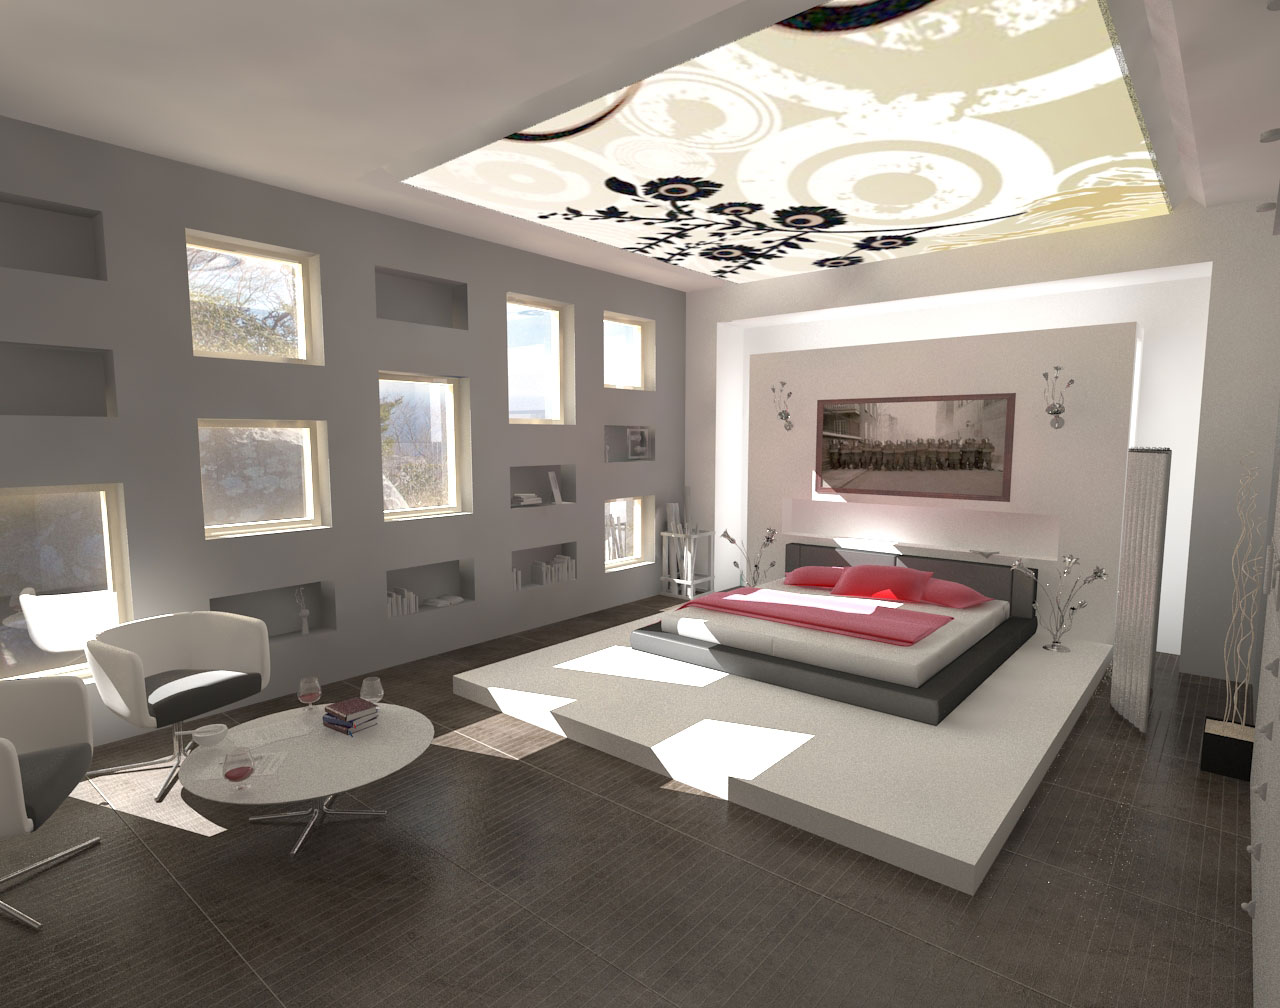 Modern Home Interior Design Bedrooms